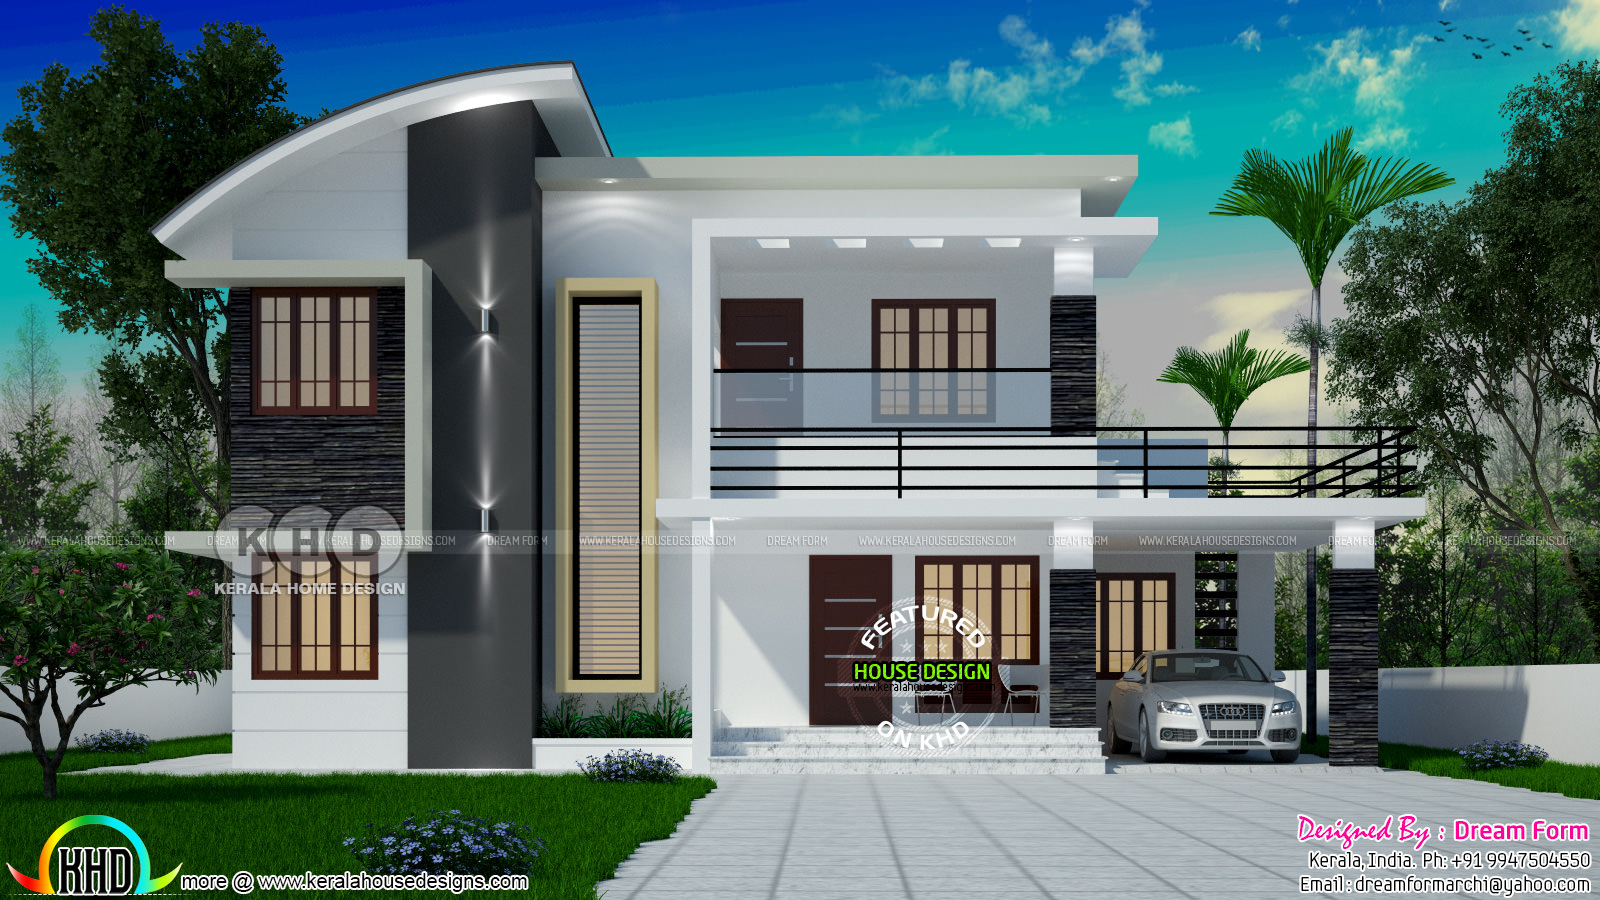 4 Bedroom Contemporary Kerala House Plans Inspirational Interior